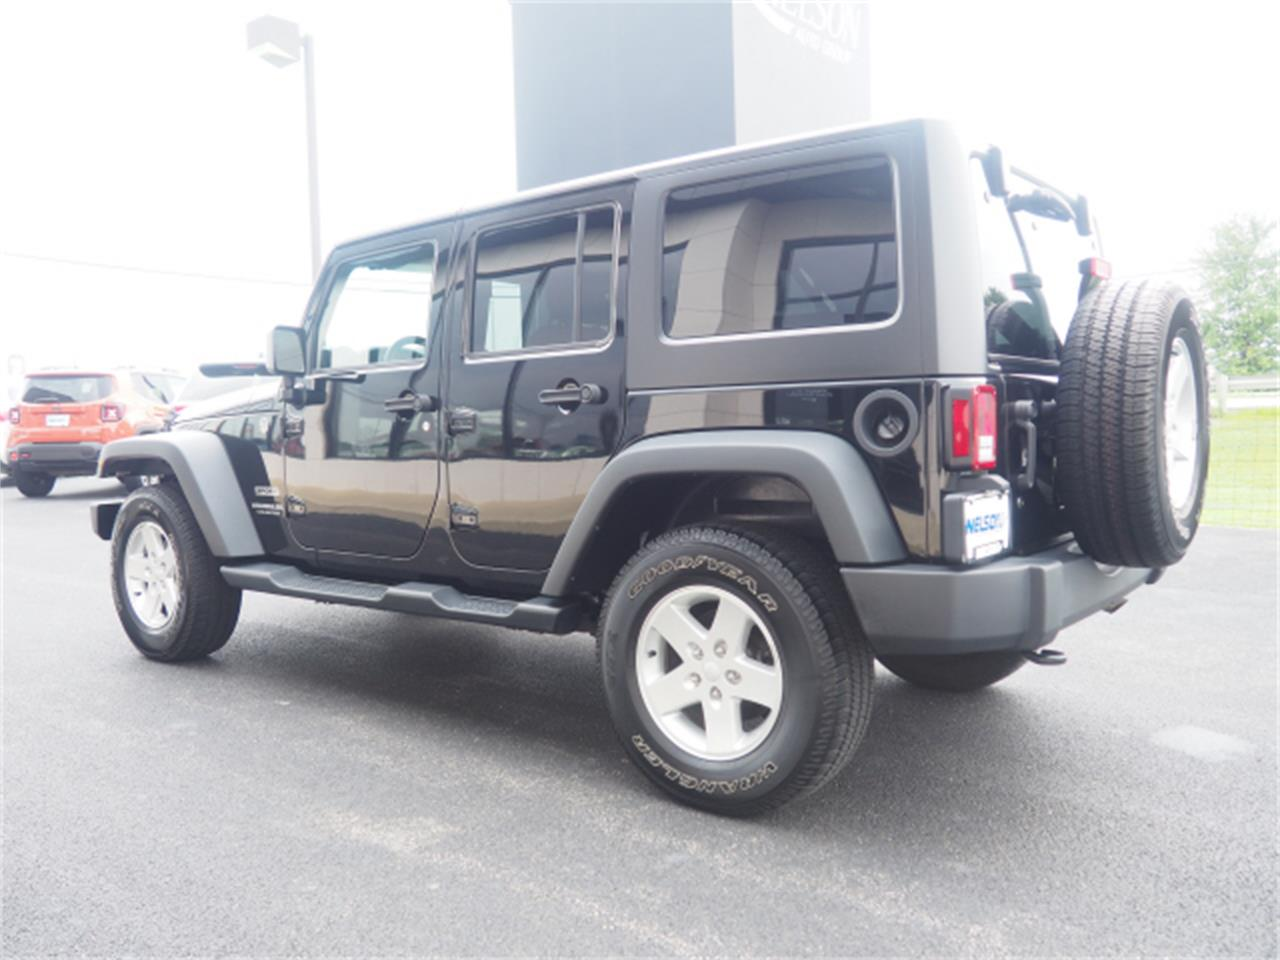 Large Picture of '15 Wrangler - $27,999.00 Offered by Nelson Automotive, Ltd. - PPKT